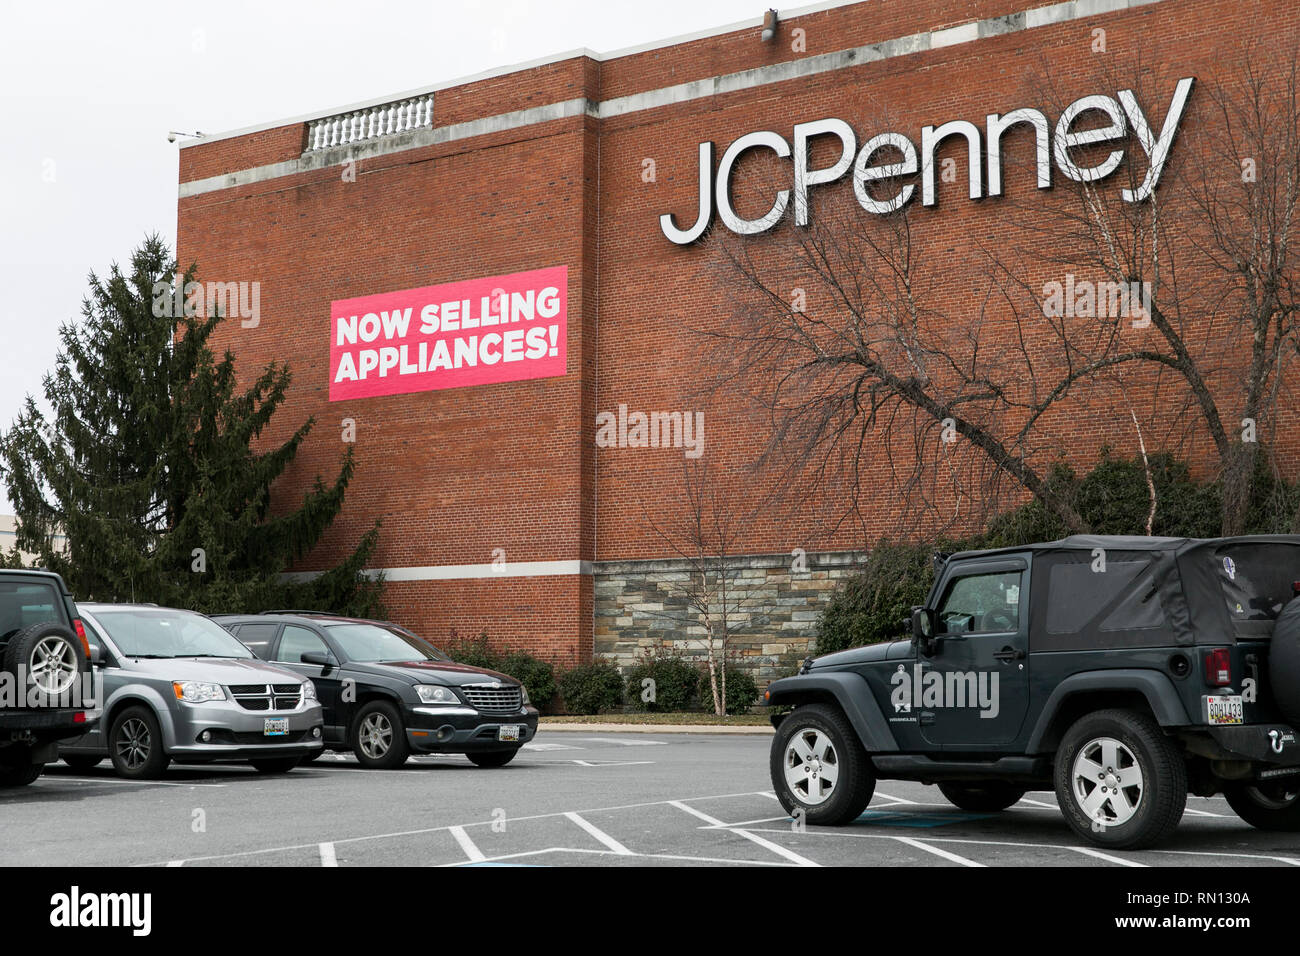 A banner that reads 'Now Selling Appliances' outside of a JCPenney retail store in Wheaton, Maryland on February 14, 2019. - Stock Image